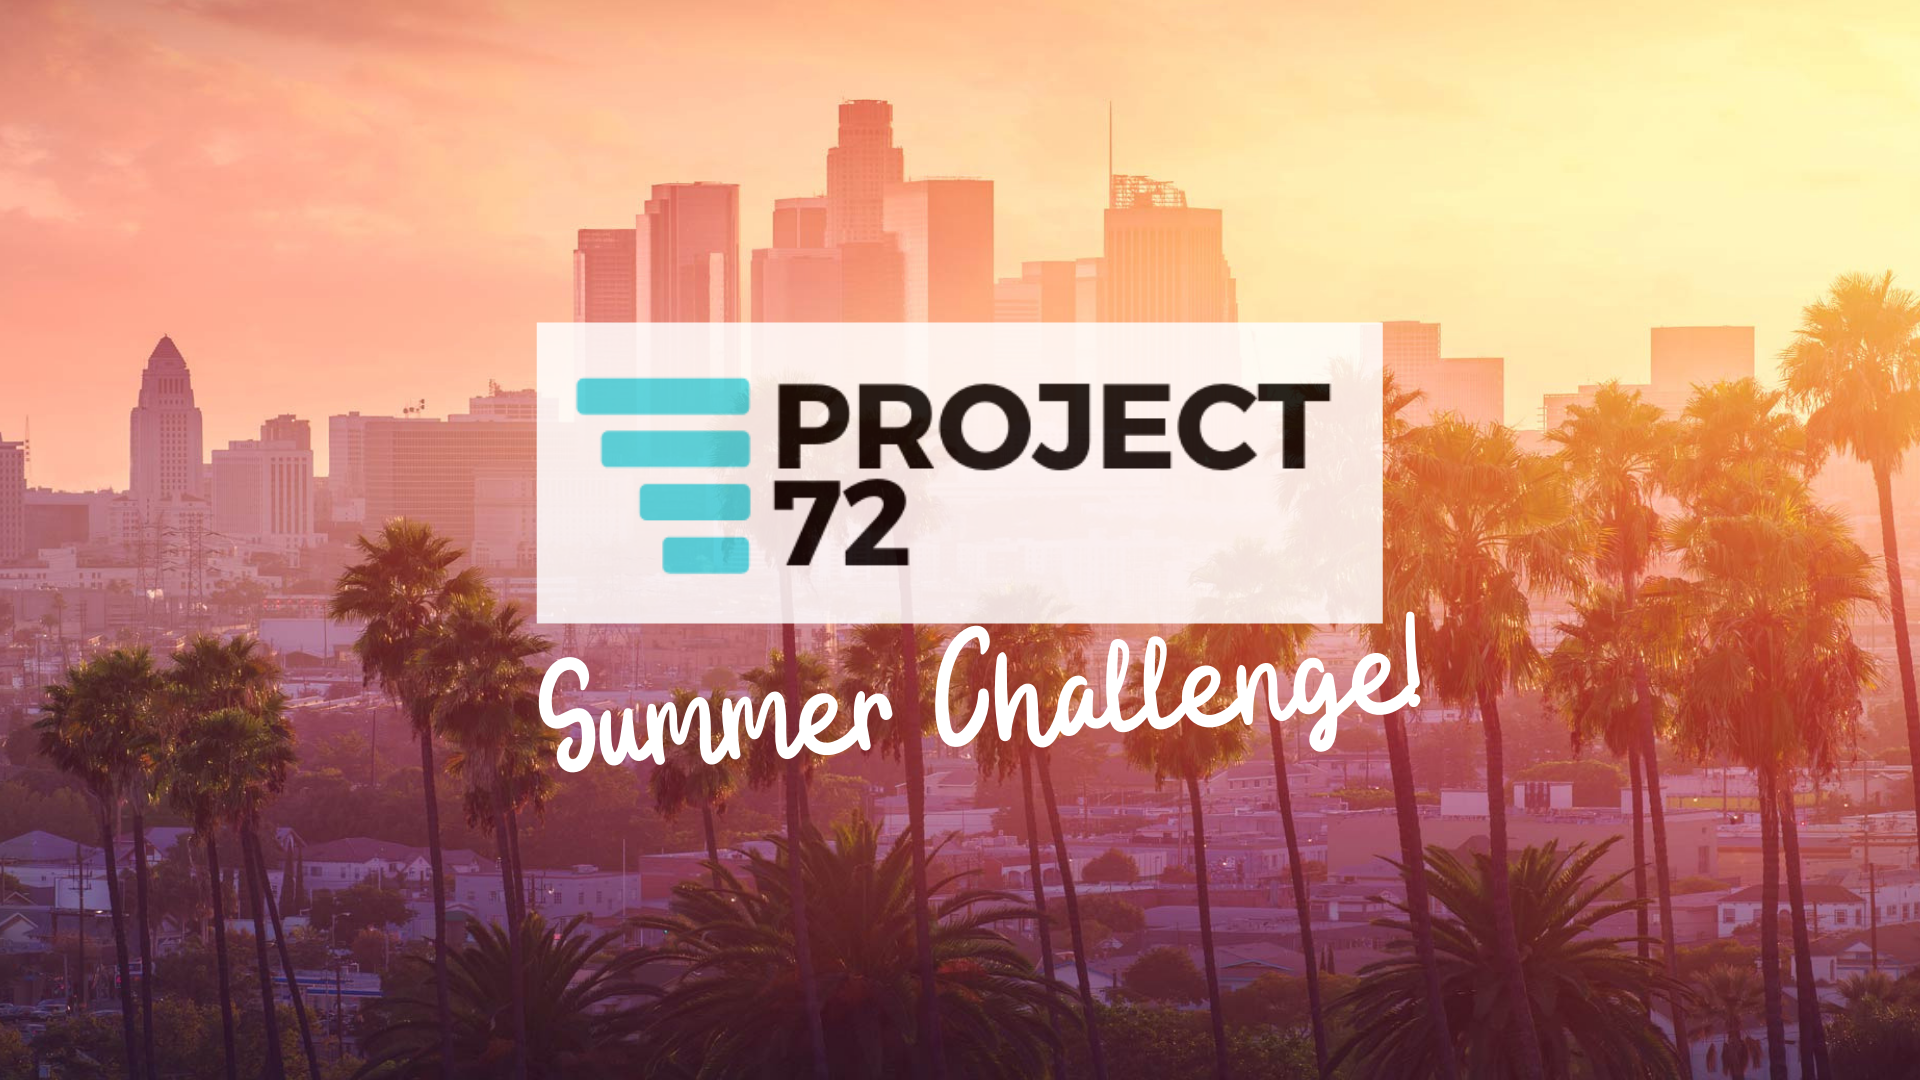 Join us this  Wednesday  at  7:00 PM  for the official kickoff of Perimeter 72! We'll be meeting at P4 to walk around the perimeter of the UCLA campus to pray together for the upcoming year!